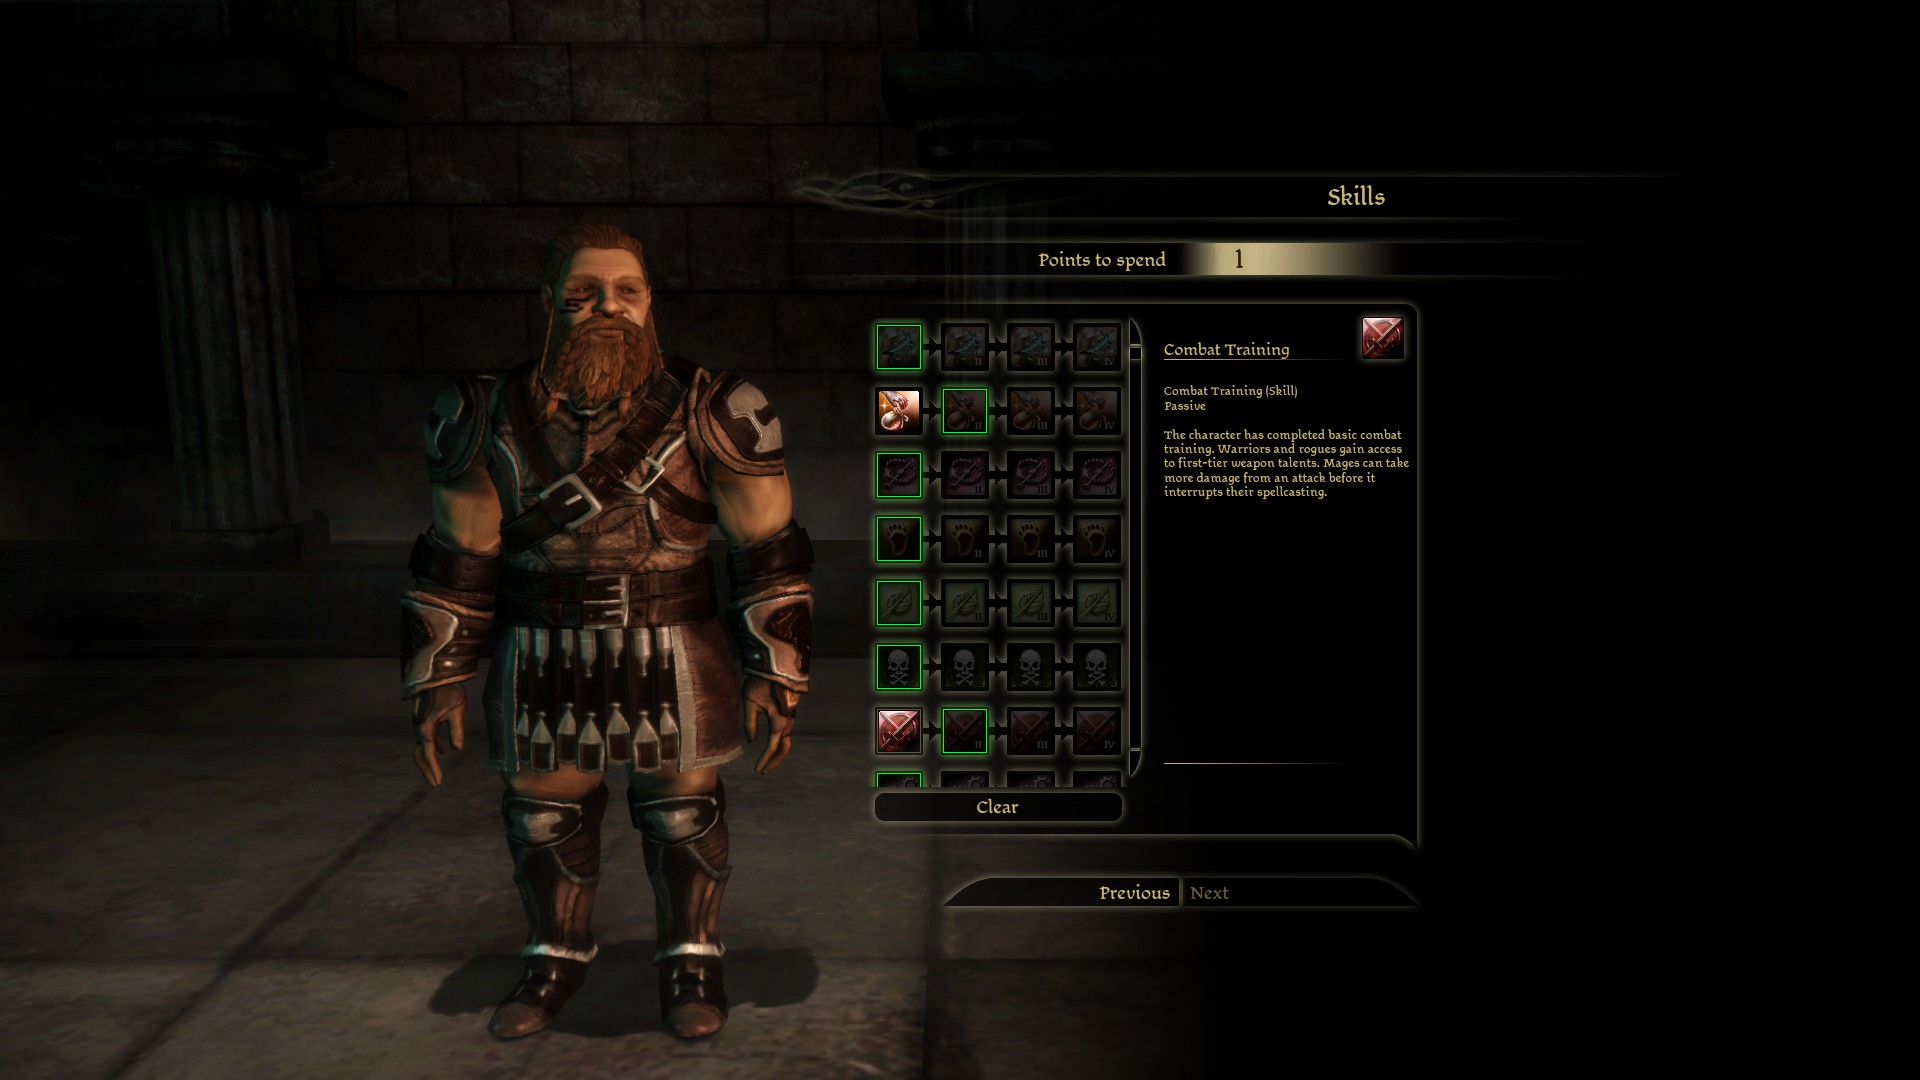 Steam community guide a guide to the laa patch official dwarf commoner warriors start with 1 point in stealing and 1 point in combat training gumiabroncs Image collections